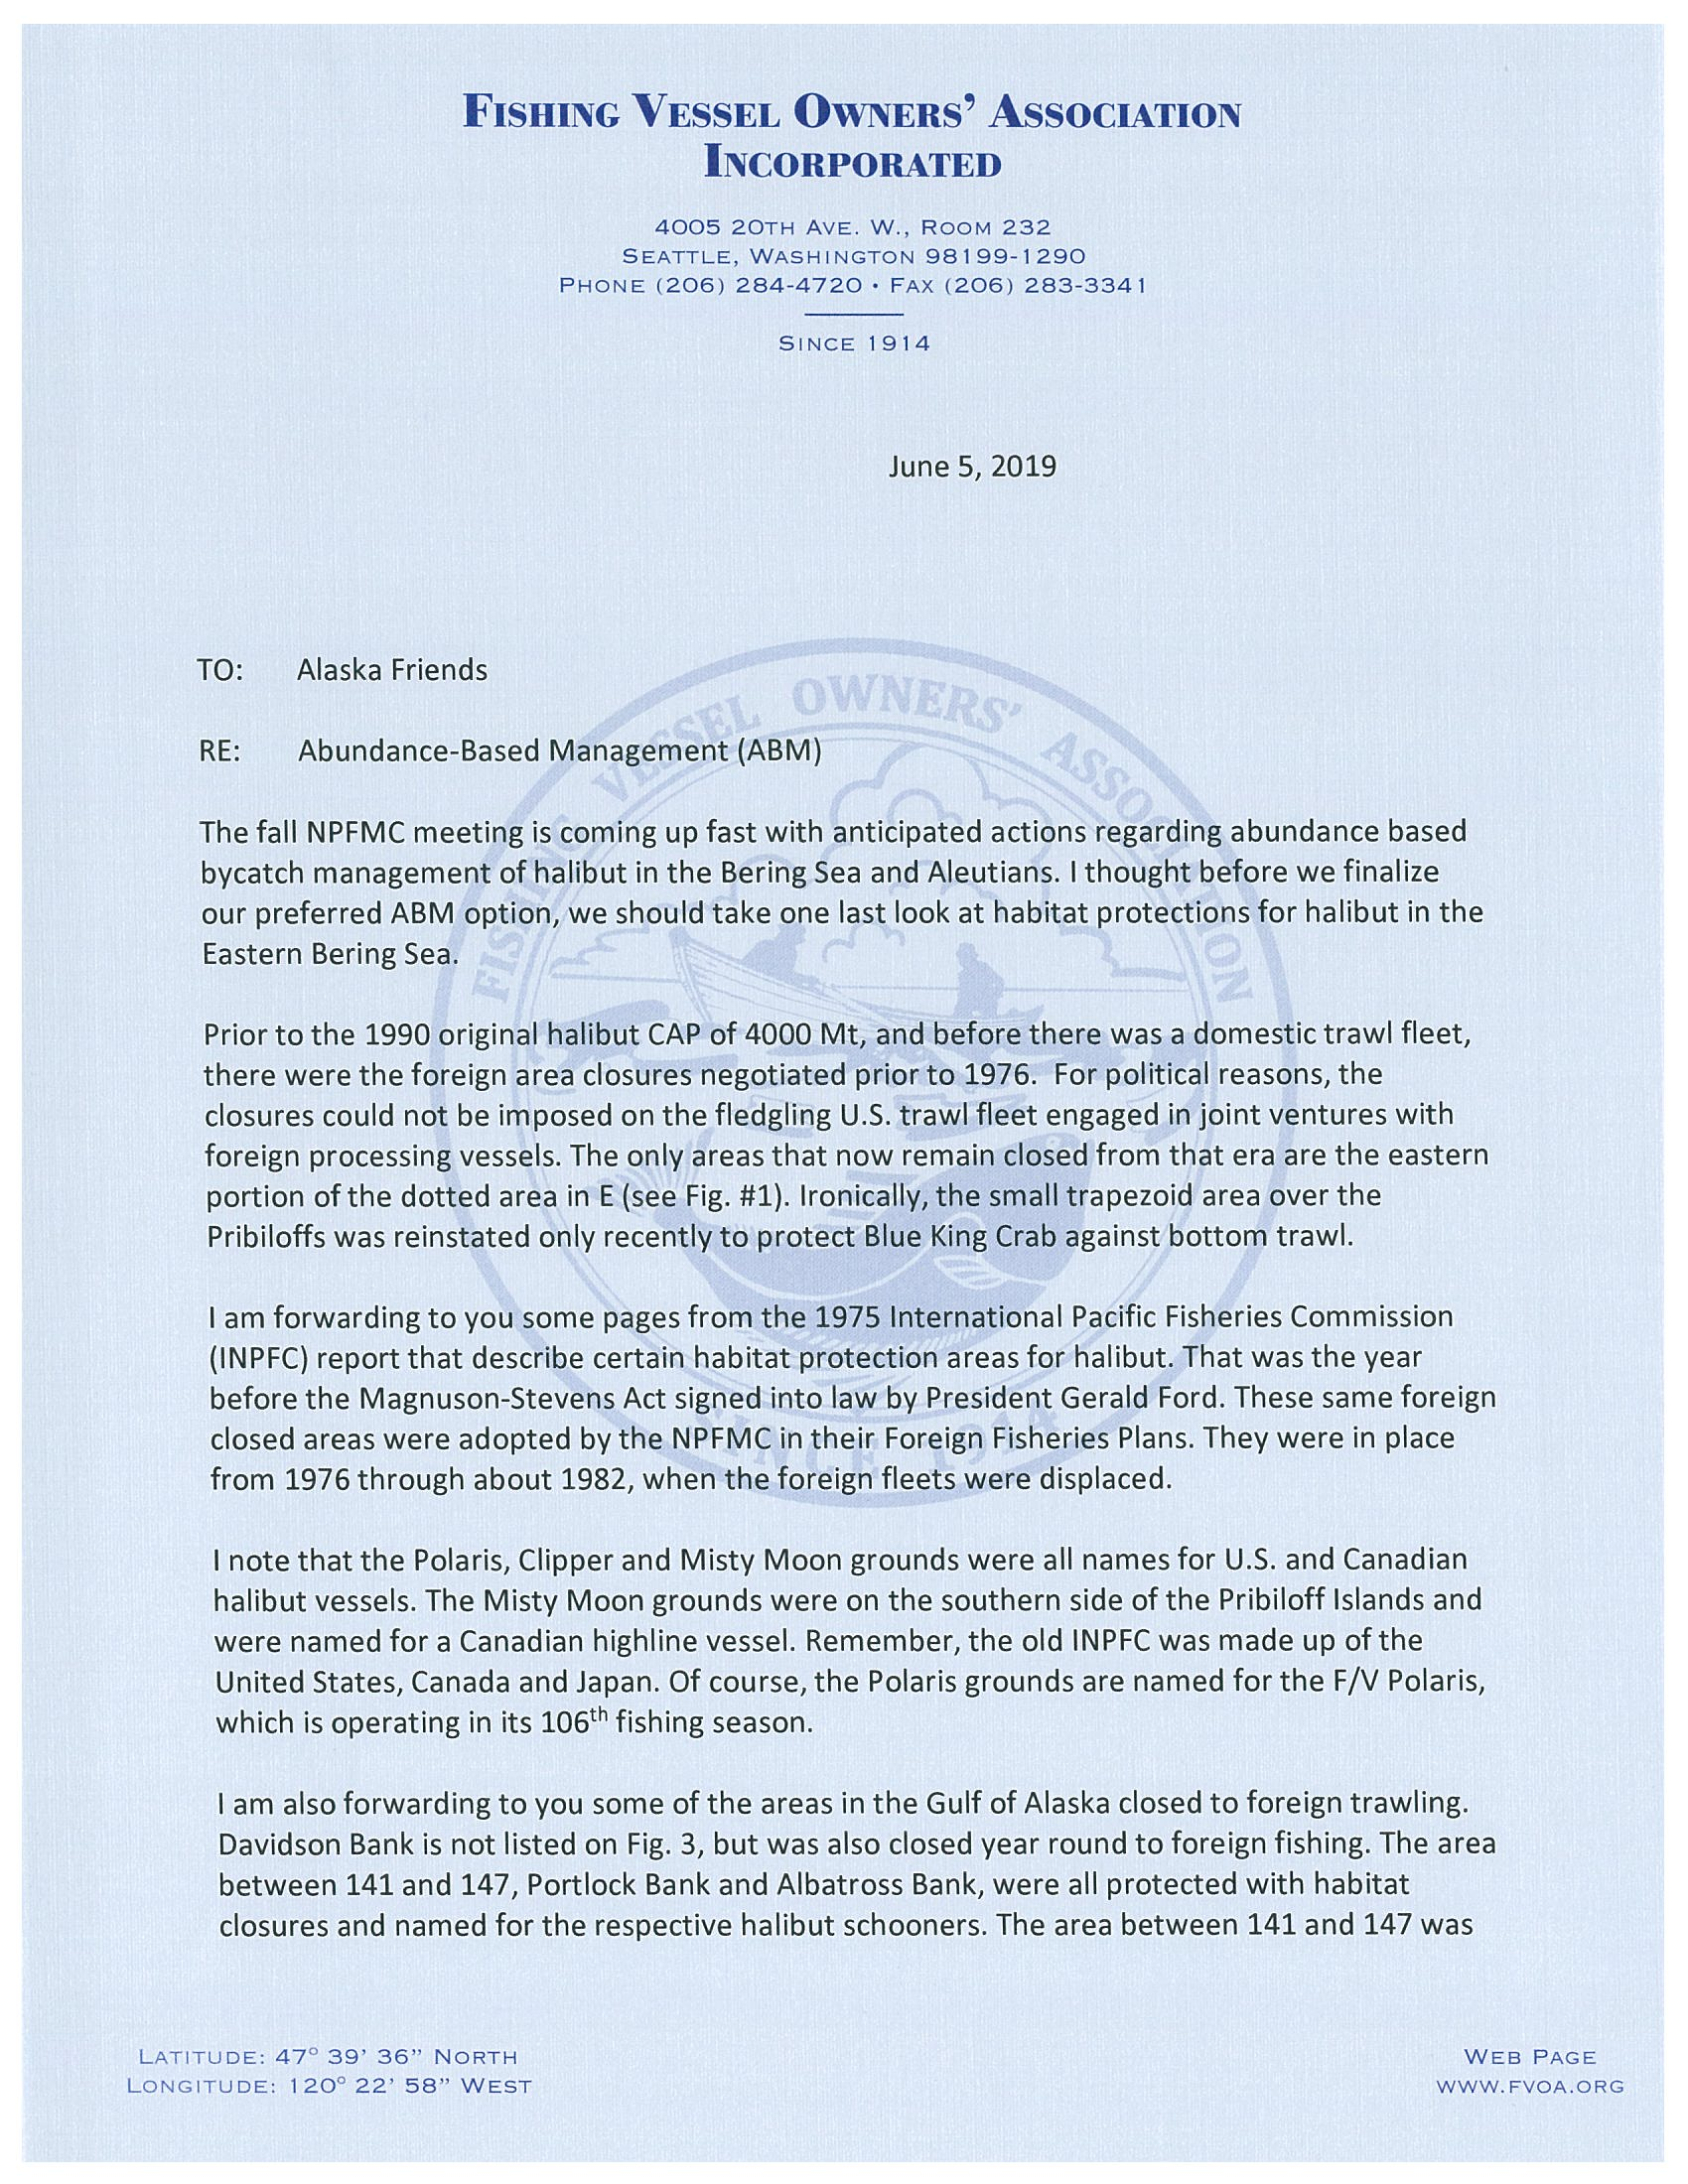 ABM Committee Chair Letter_Page_1_Image_0001.jpg